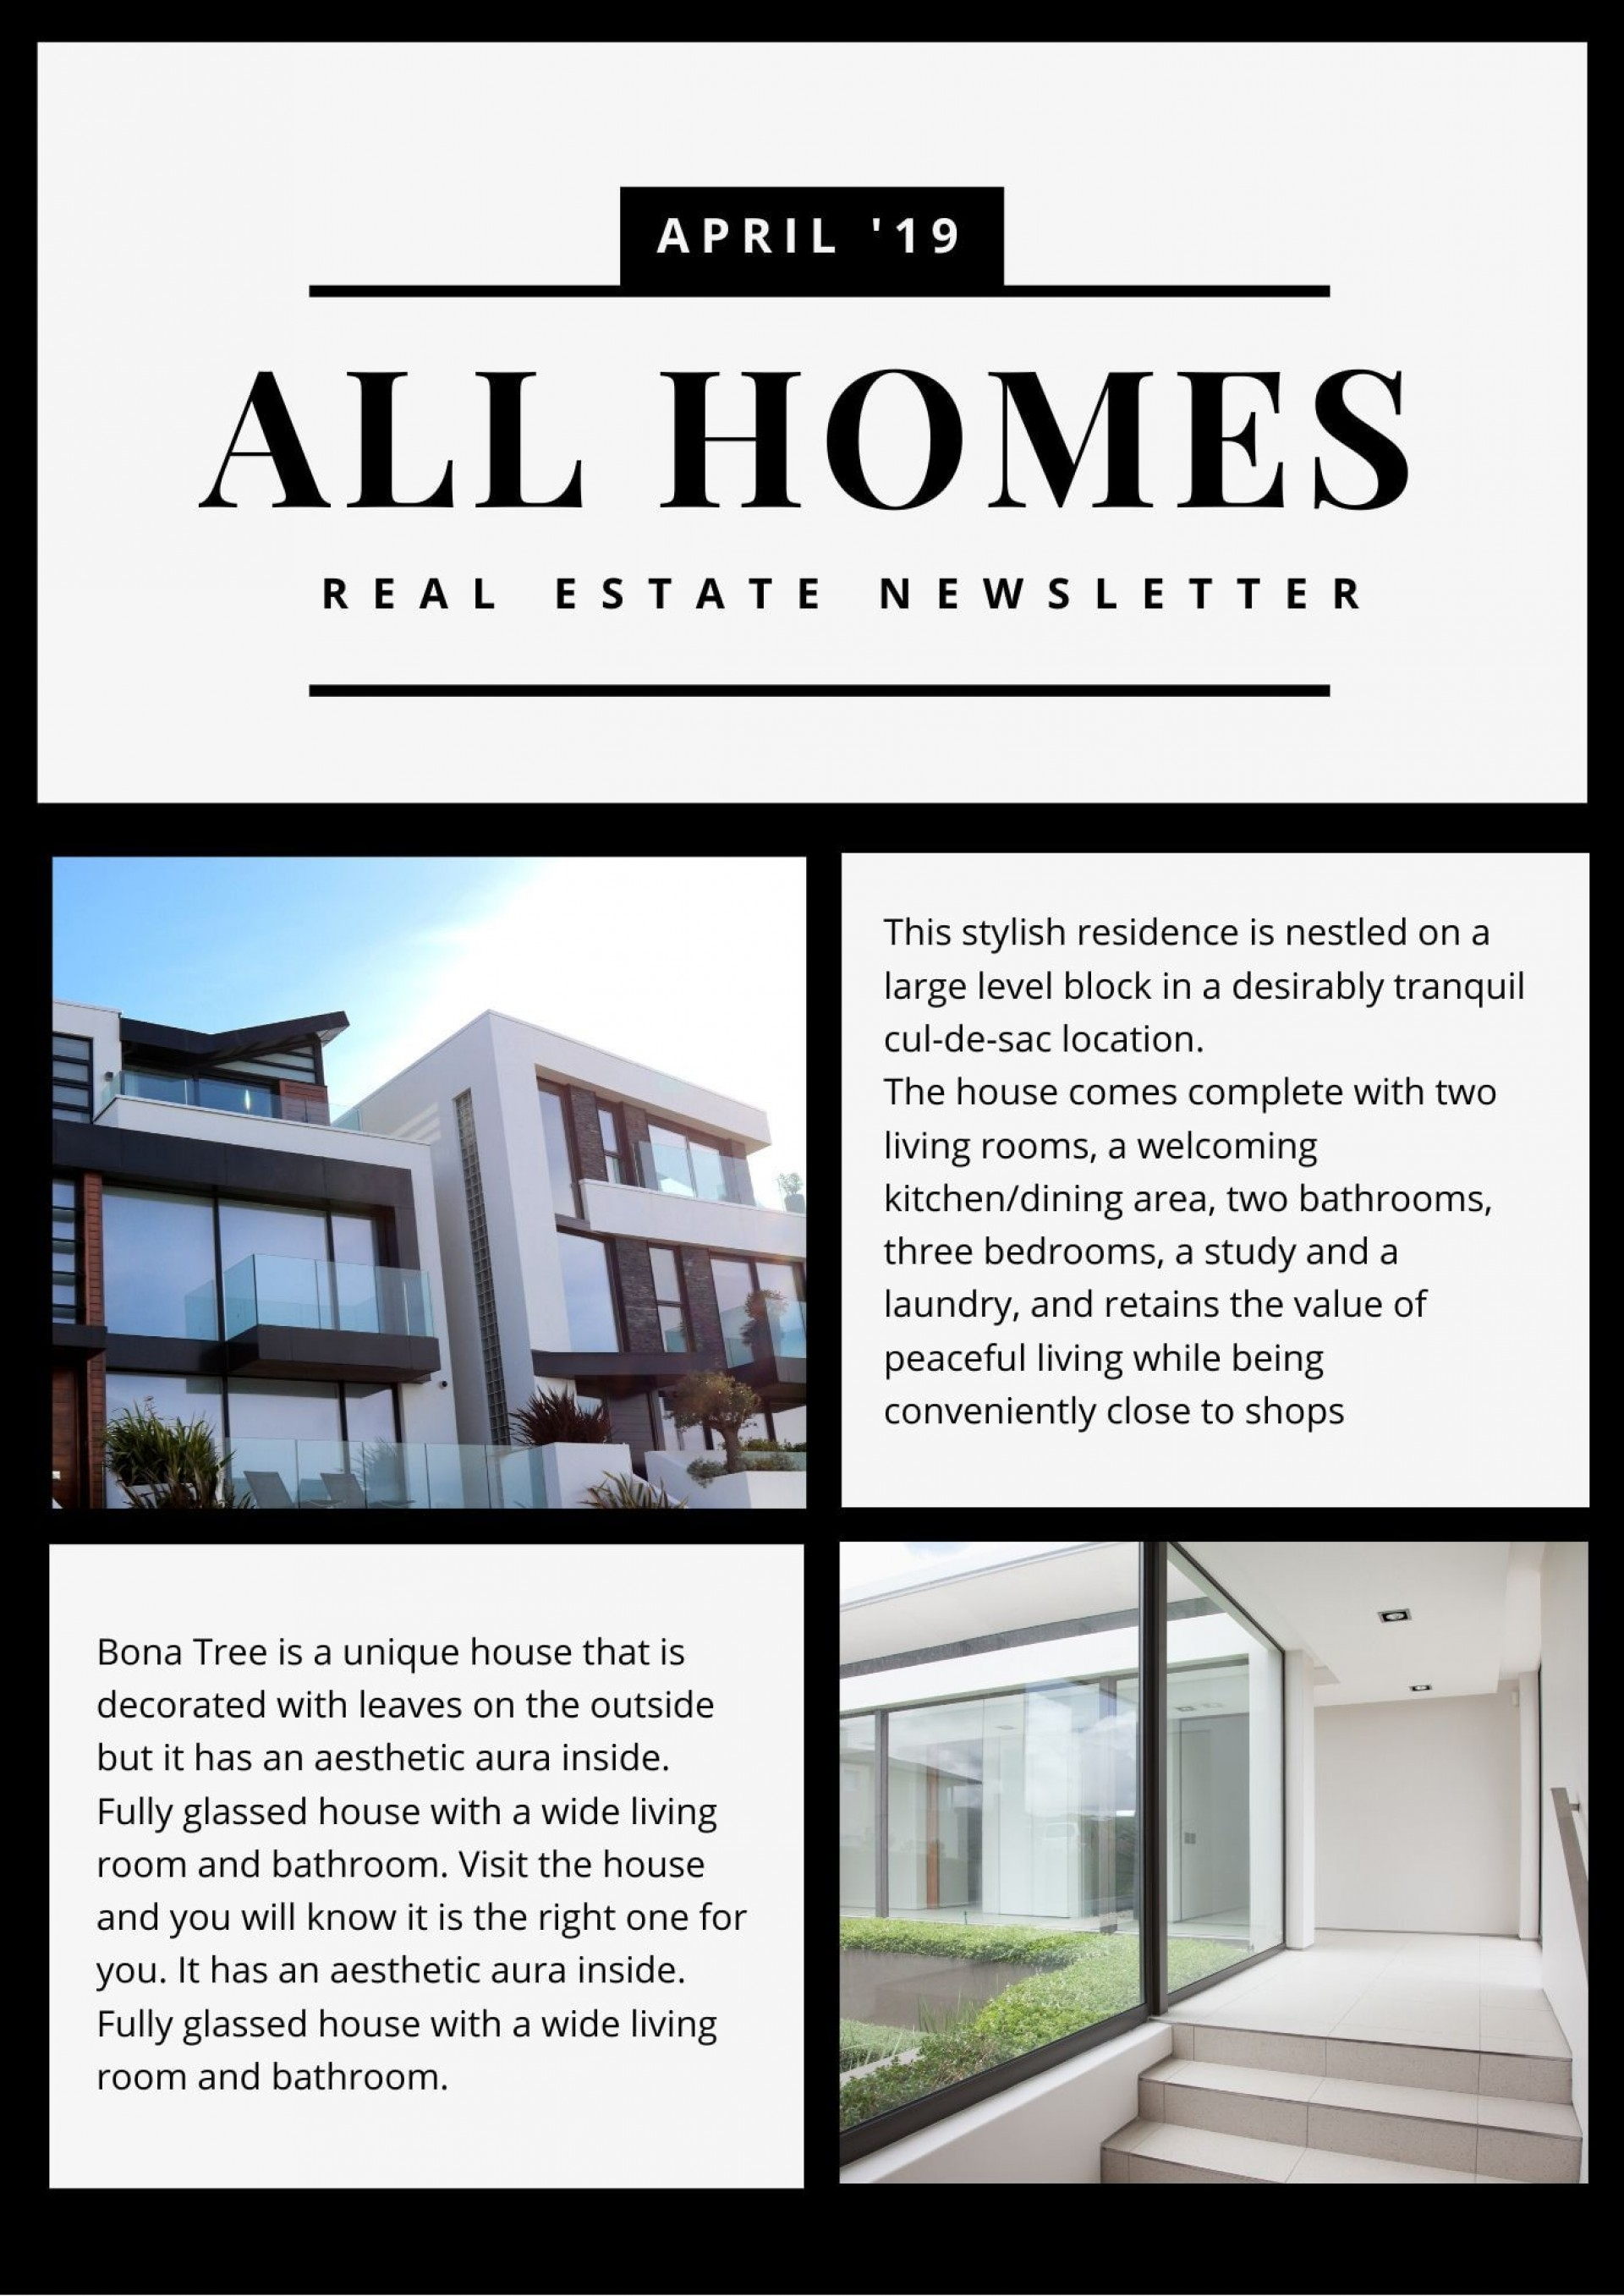 006 Excellent Real Estate Newsletter Template Example  Templates Free Printable Best1920